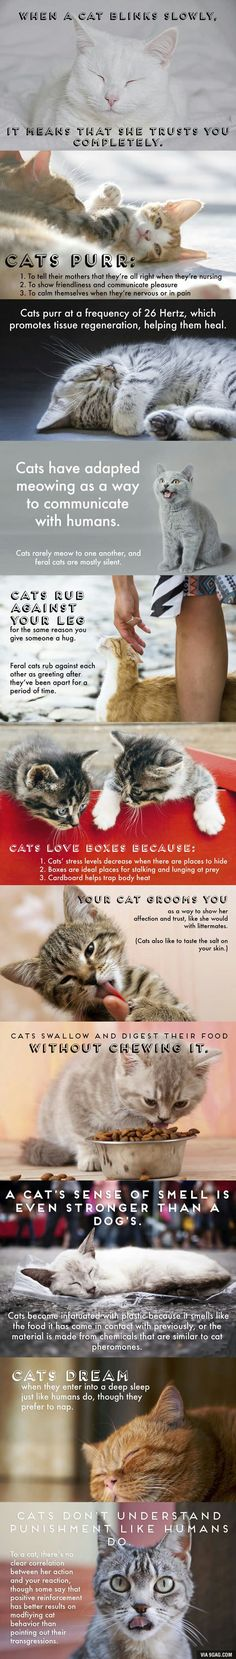 Facts about cats! Part 2 - 9GAG